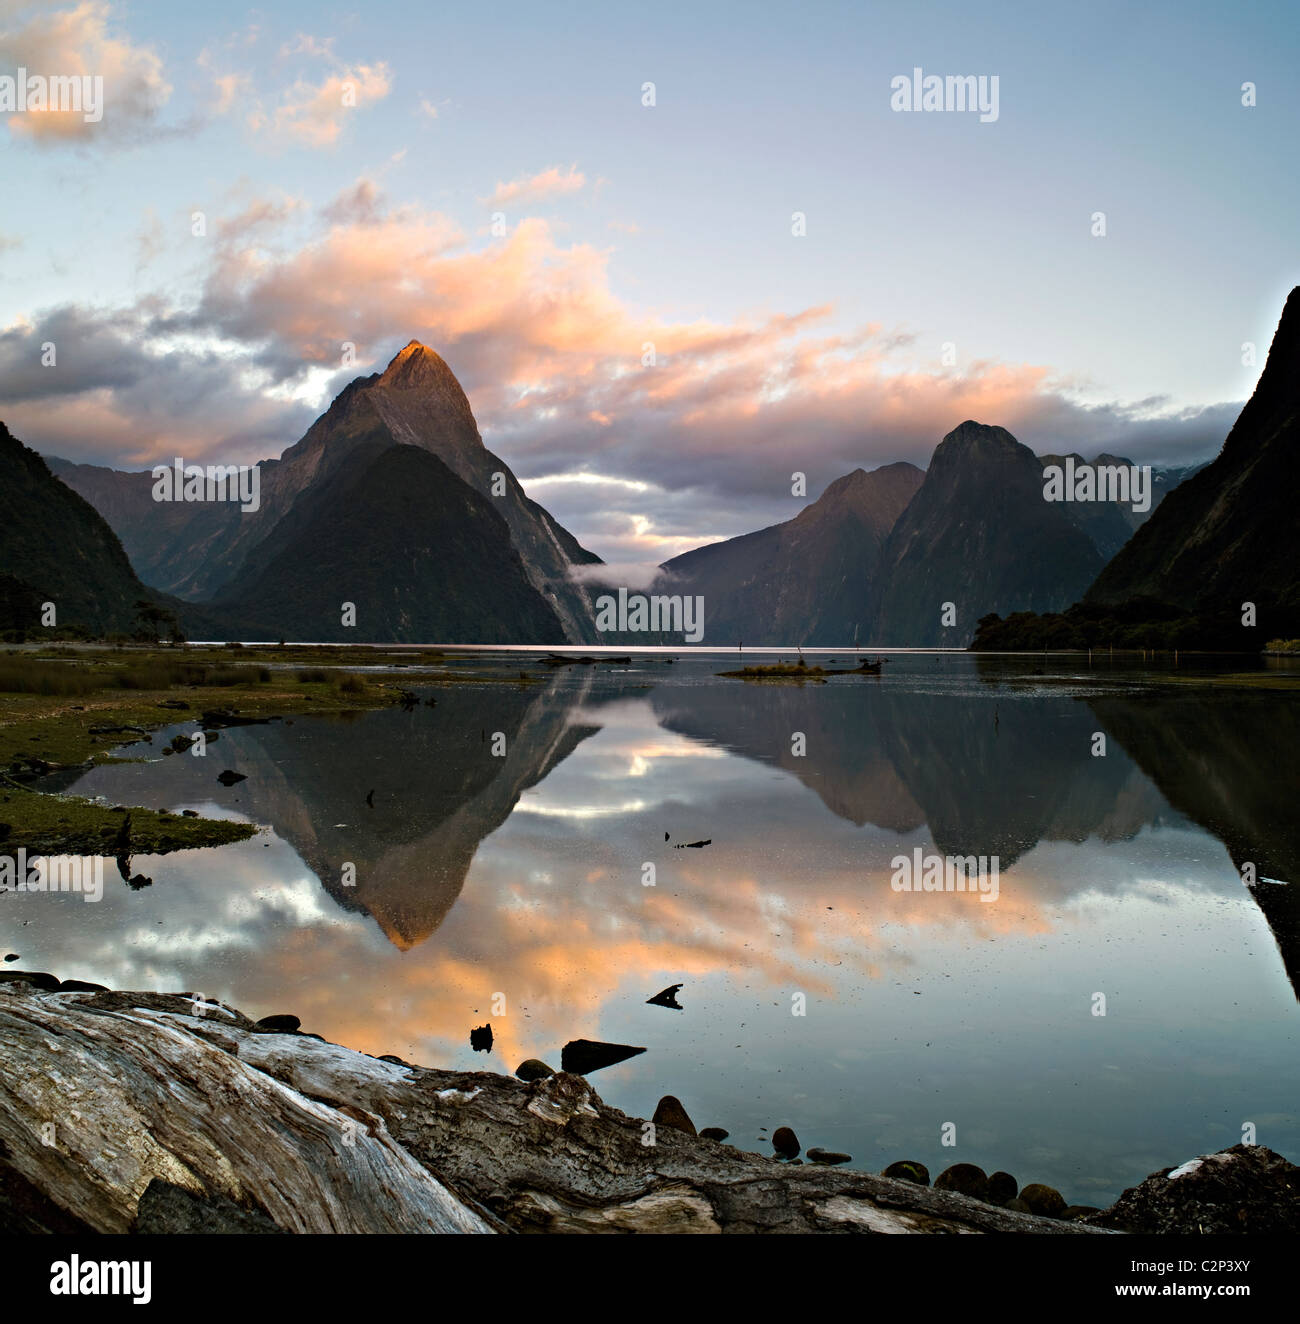 Mitre Peak,Milford Sound, New Zealand at dawn - Stock Image